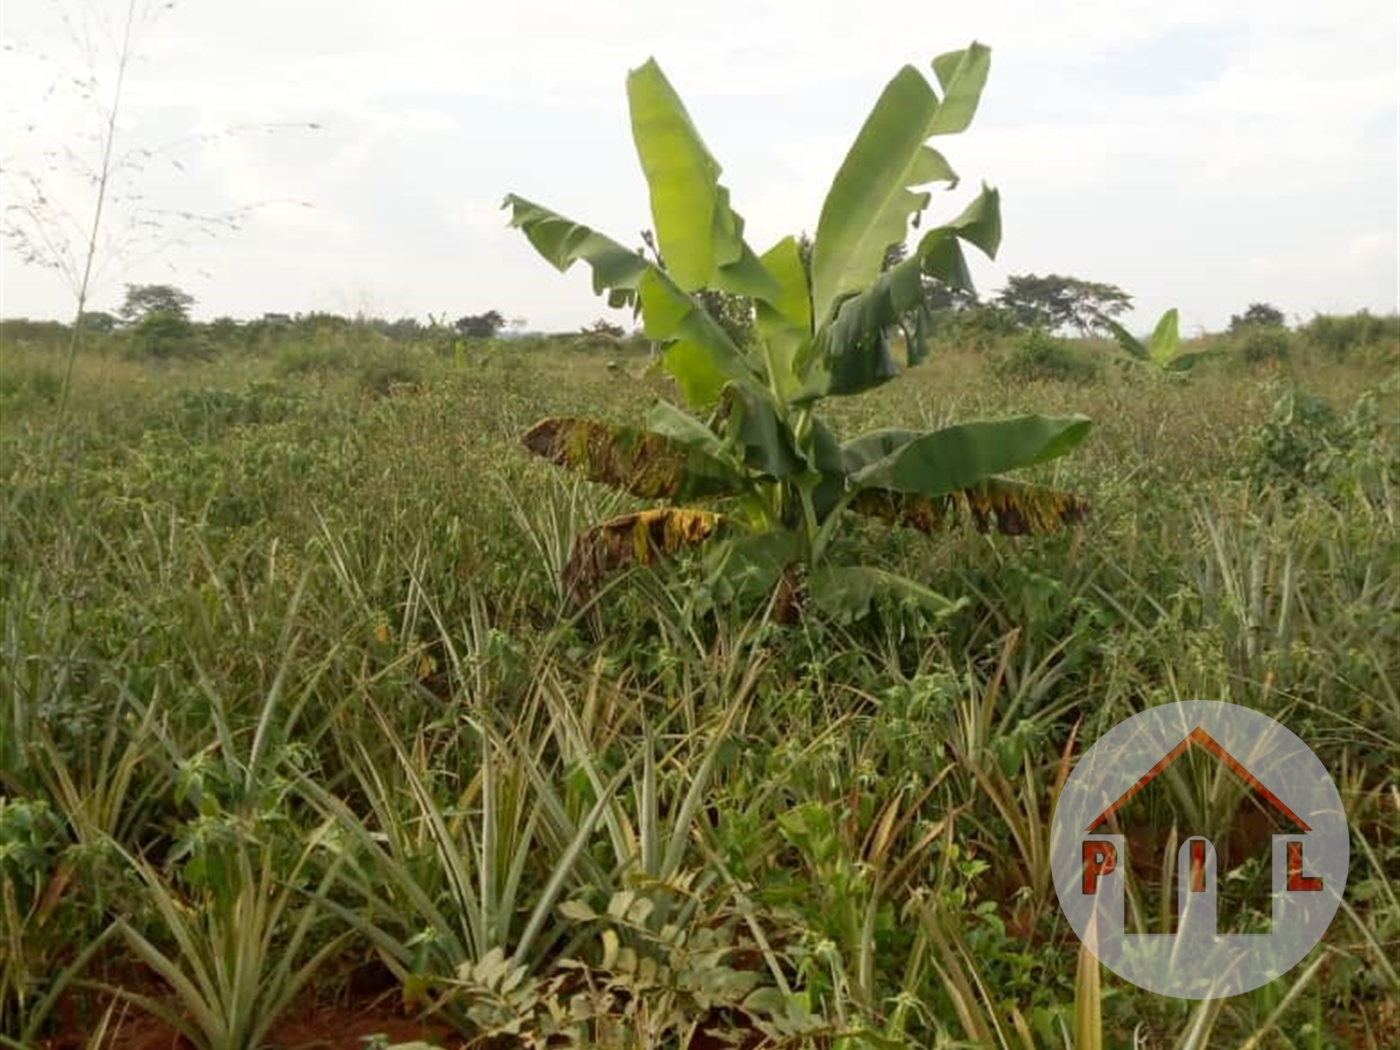 Multi Purpose Land for sale in Namulonge Wakiso